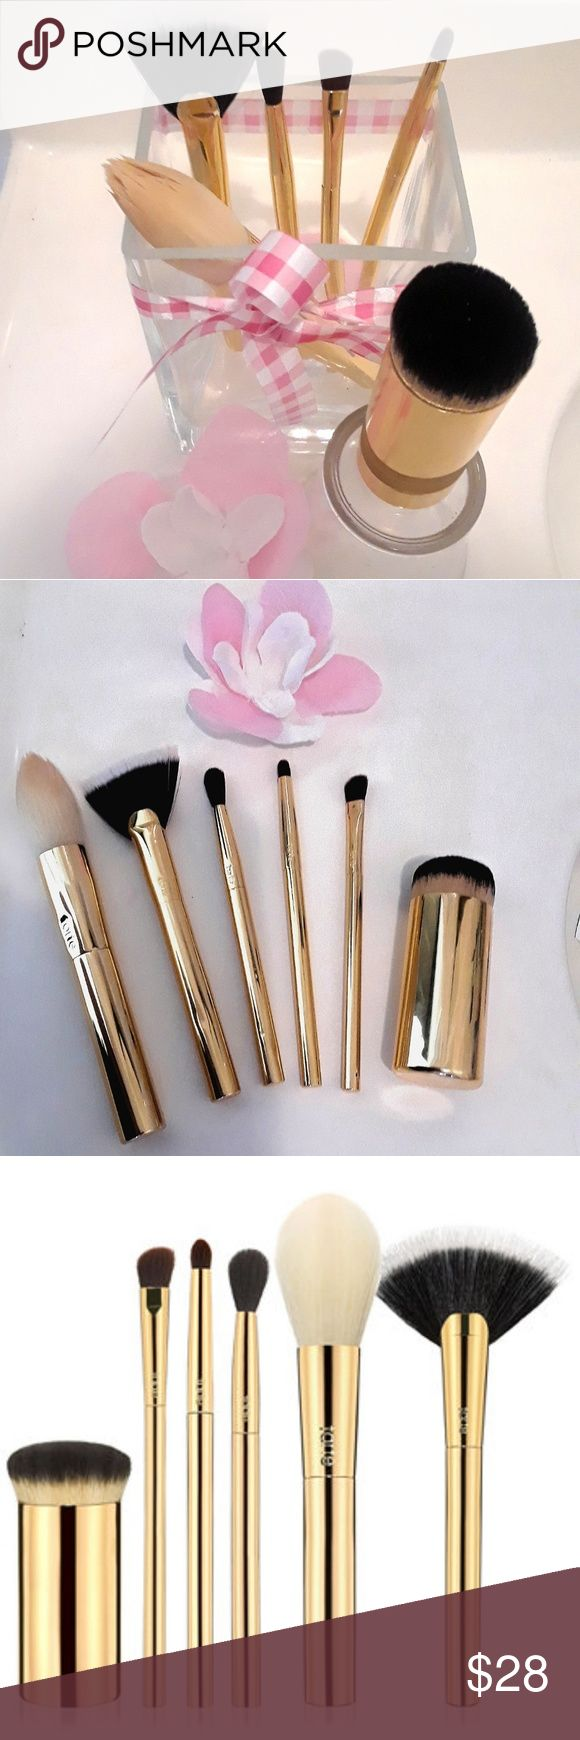 Limited Edition Tarte Brushes Create Flawless, Slay-Worthy Looks With The Tarte™ x @NicolConcilio Brush Set! Award Winning Beauty. Leader In Eco-Chic Beauty.I used 3 times. I clean the brushes Tarte Makeup Brushes & Tools